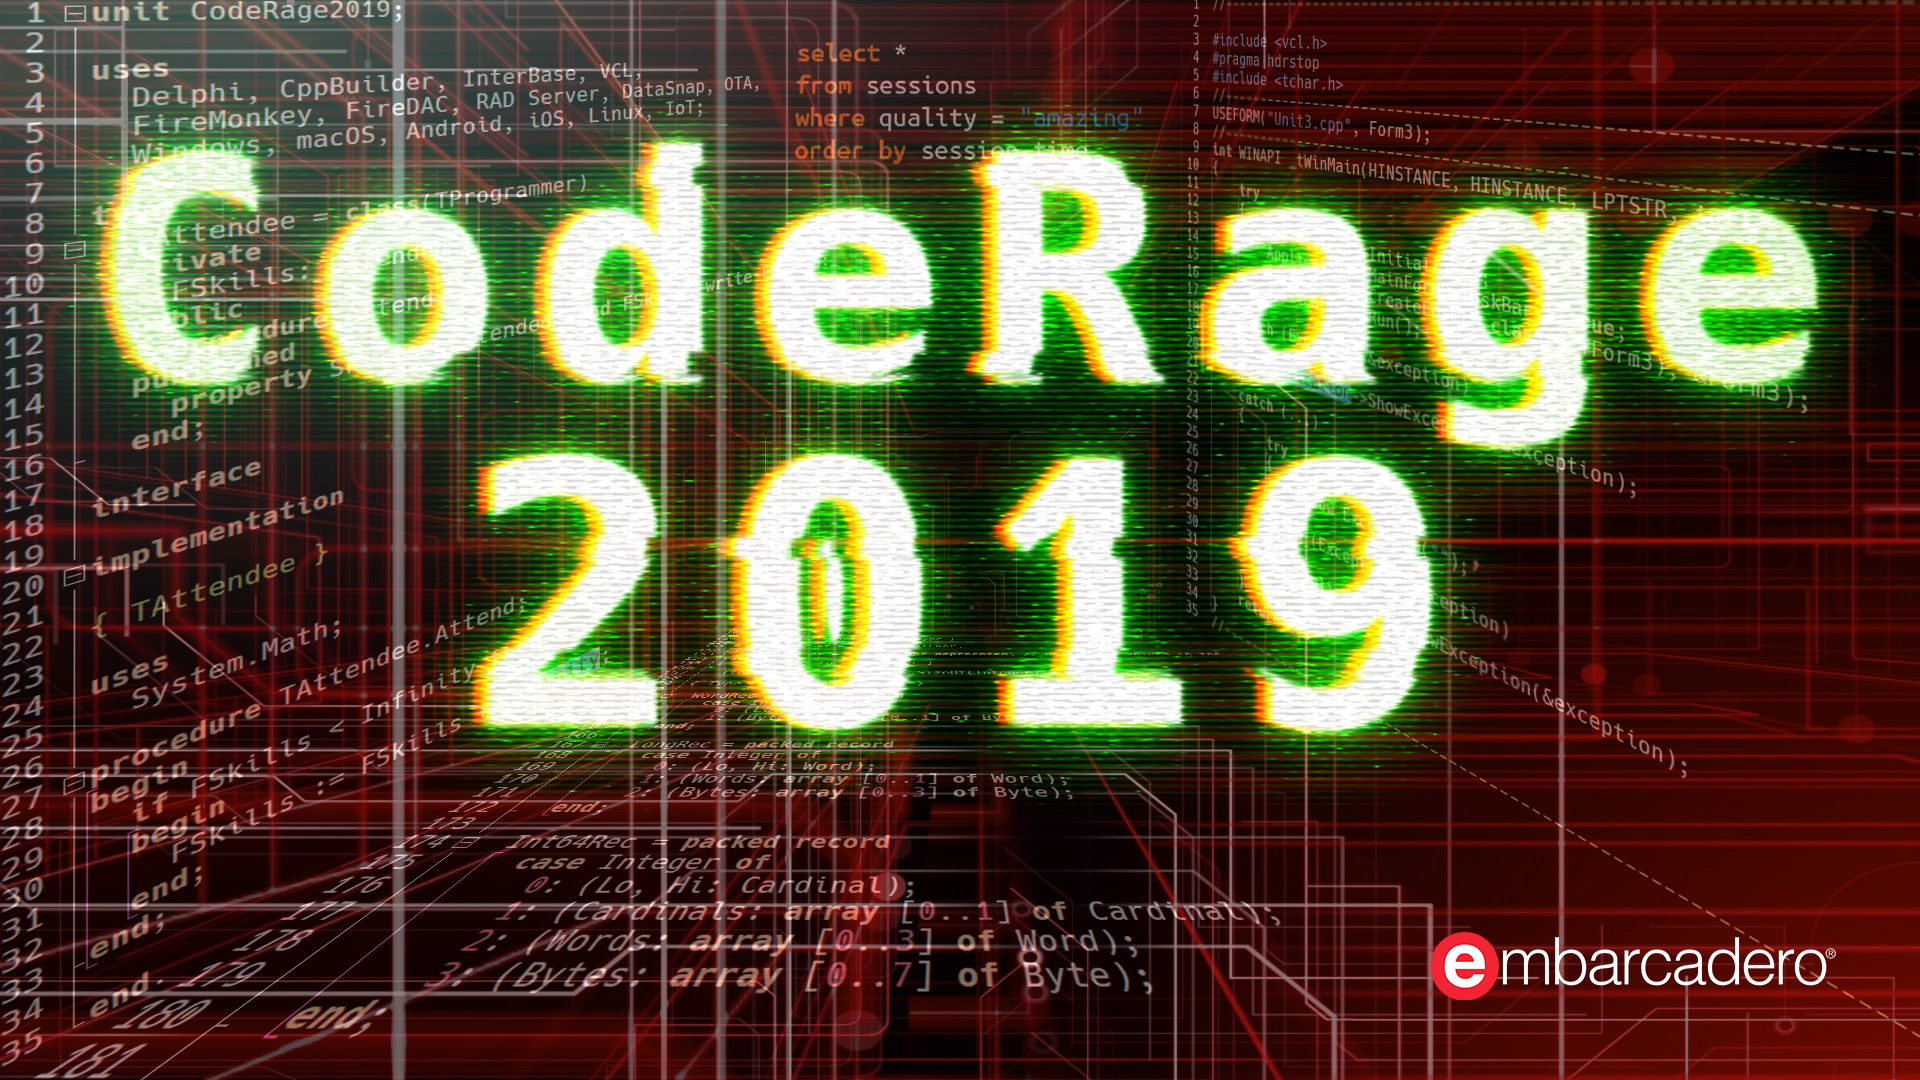 8524.coderage 2019 Full